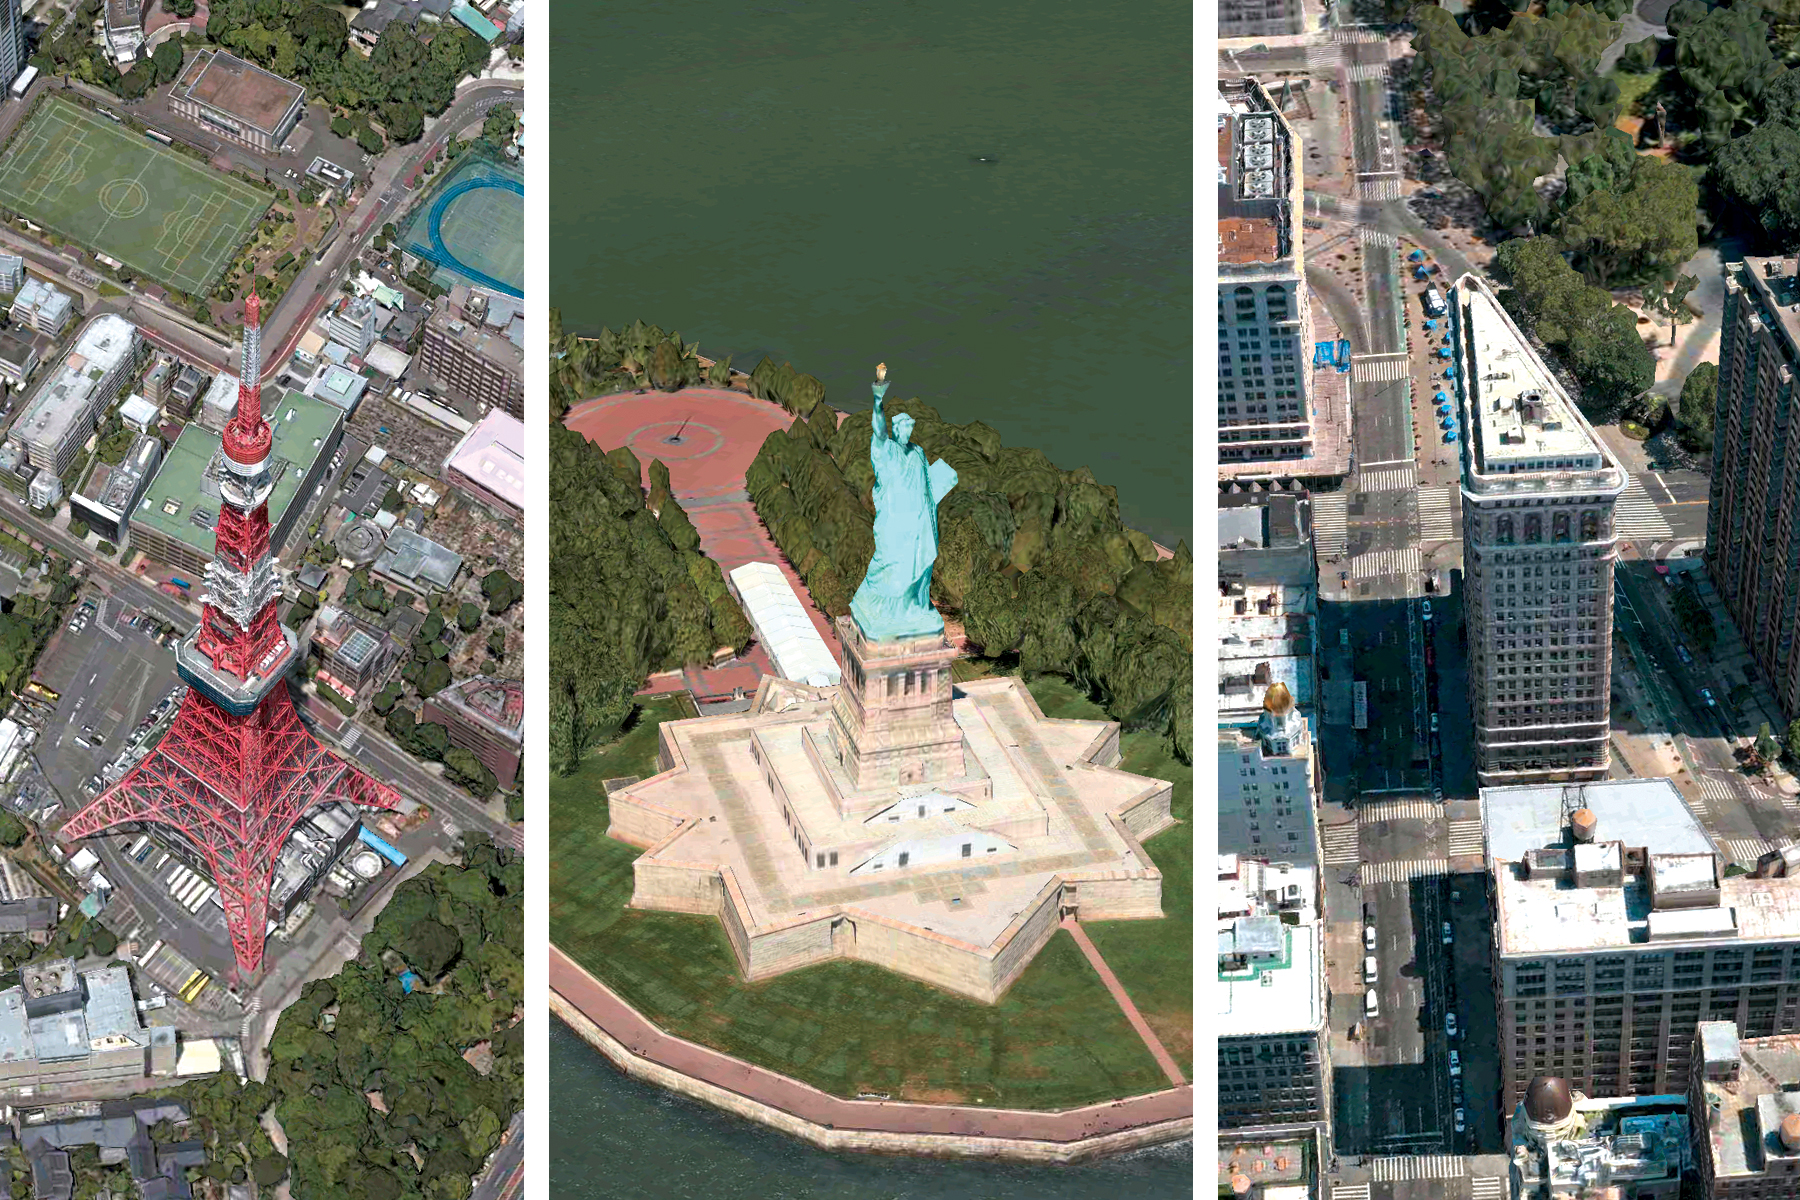 Tokyo Tower, Statue of Liberty and Flatiron Building seen using Apple Maps Flyover Tool